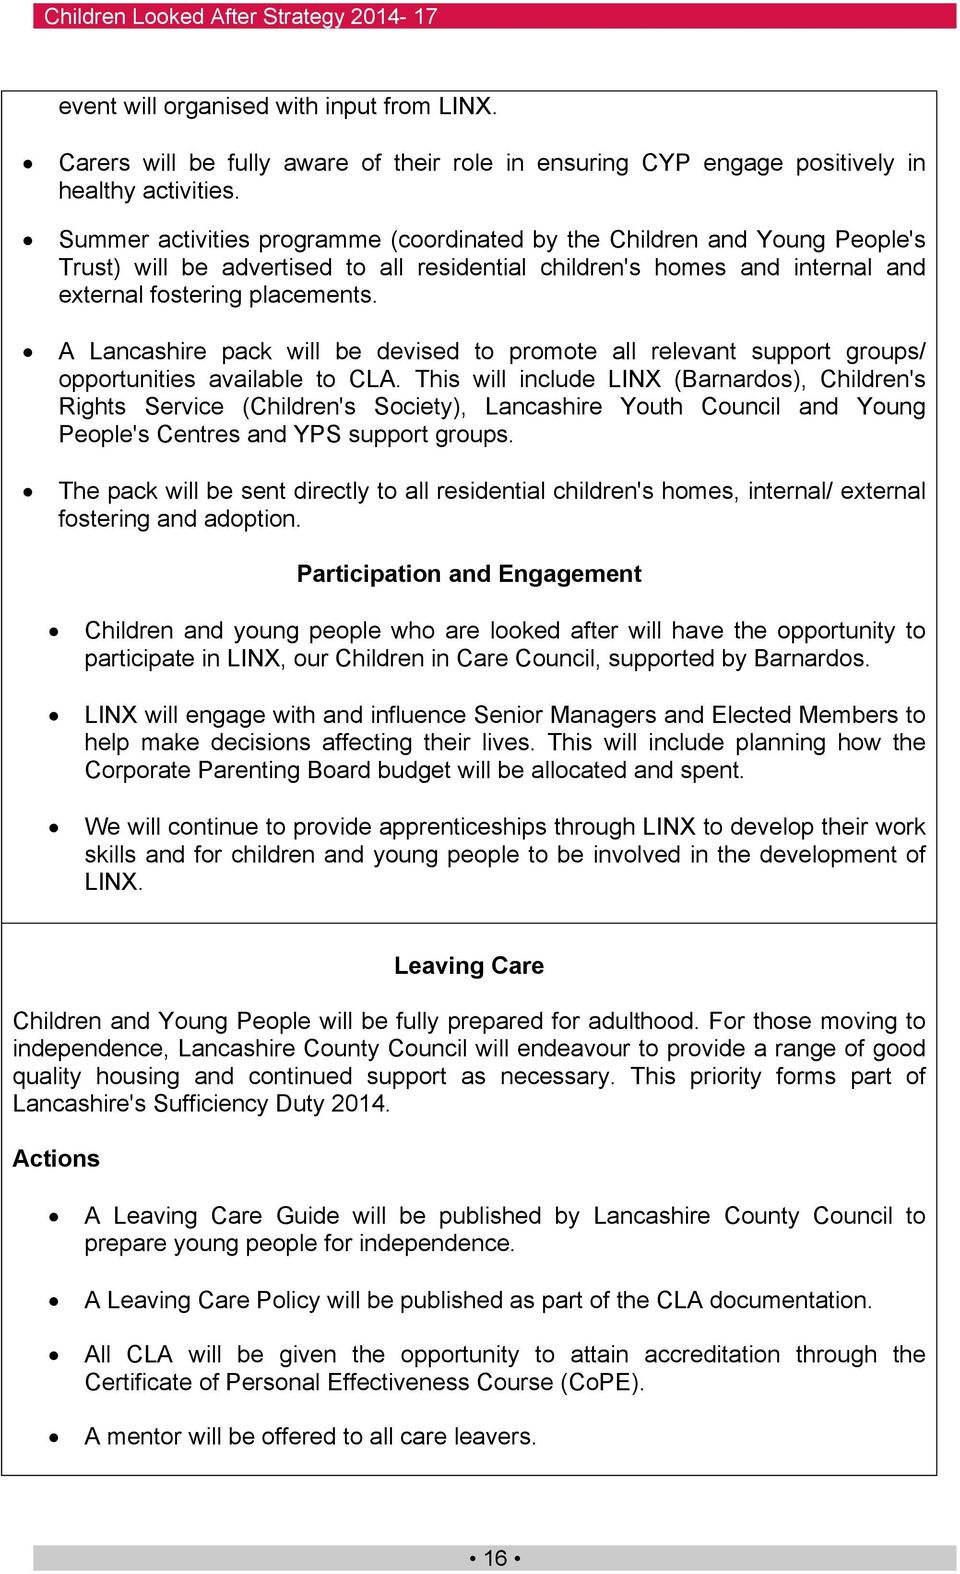 A Lancashire pack will be devised to promote all relevant support groups/ opportunities available to CLA.